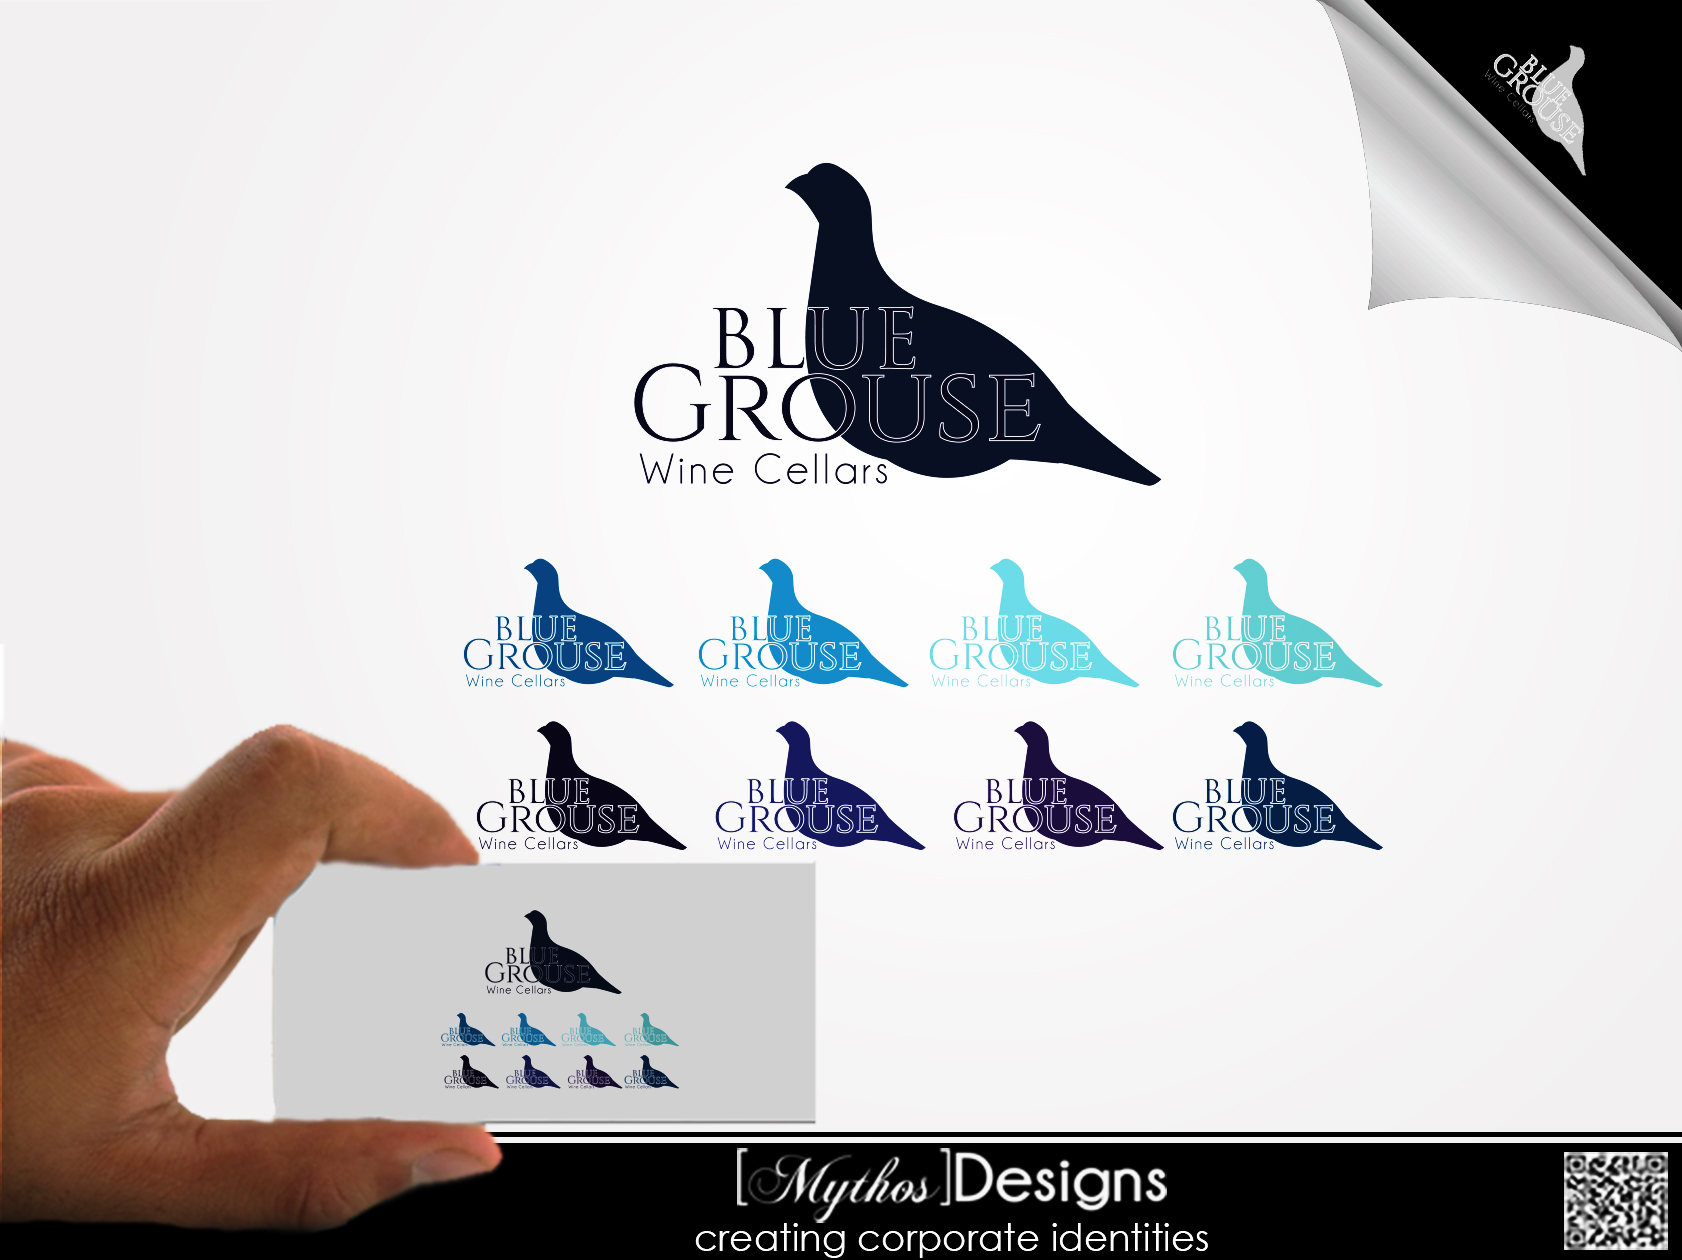 Logo Design by Mythos Designs - Entry No. 183 in the Logo Design Contest Creative Logo Design for Blue Grouse Wine Cellars.